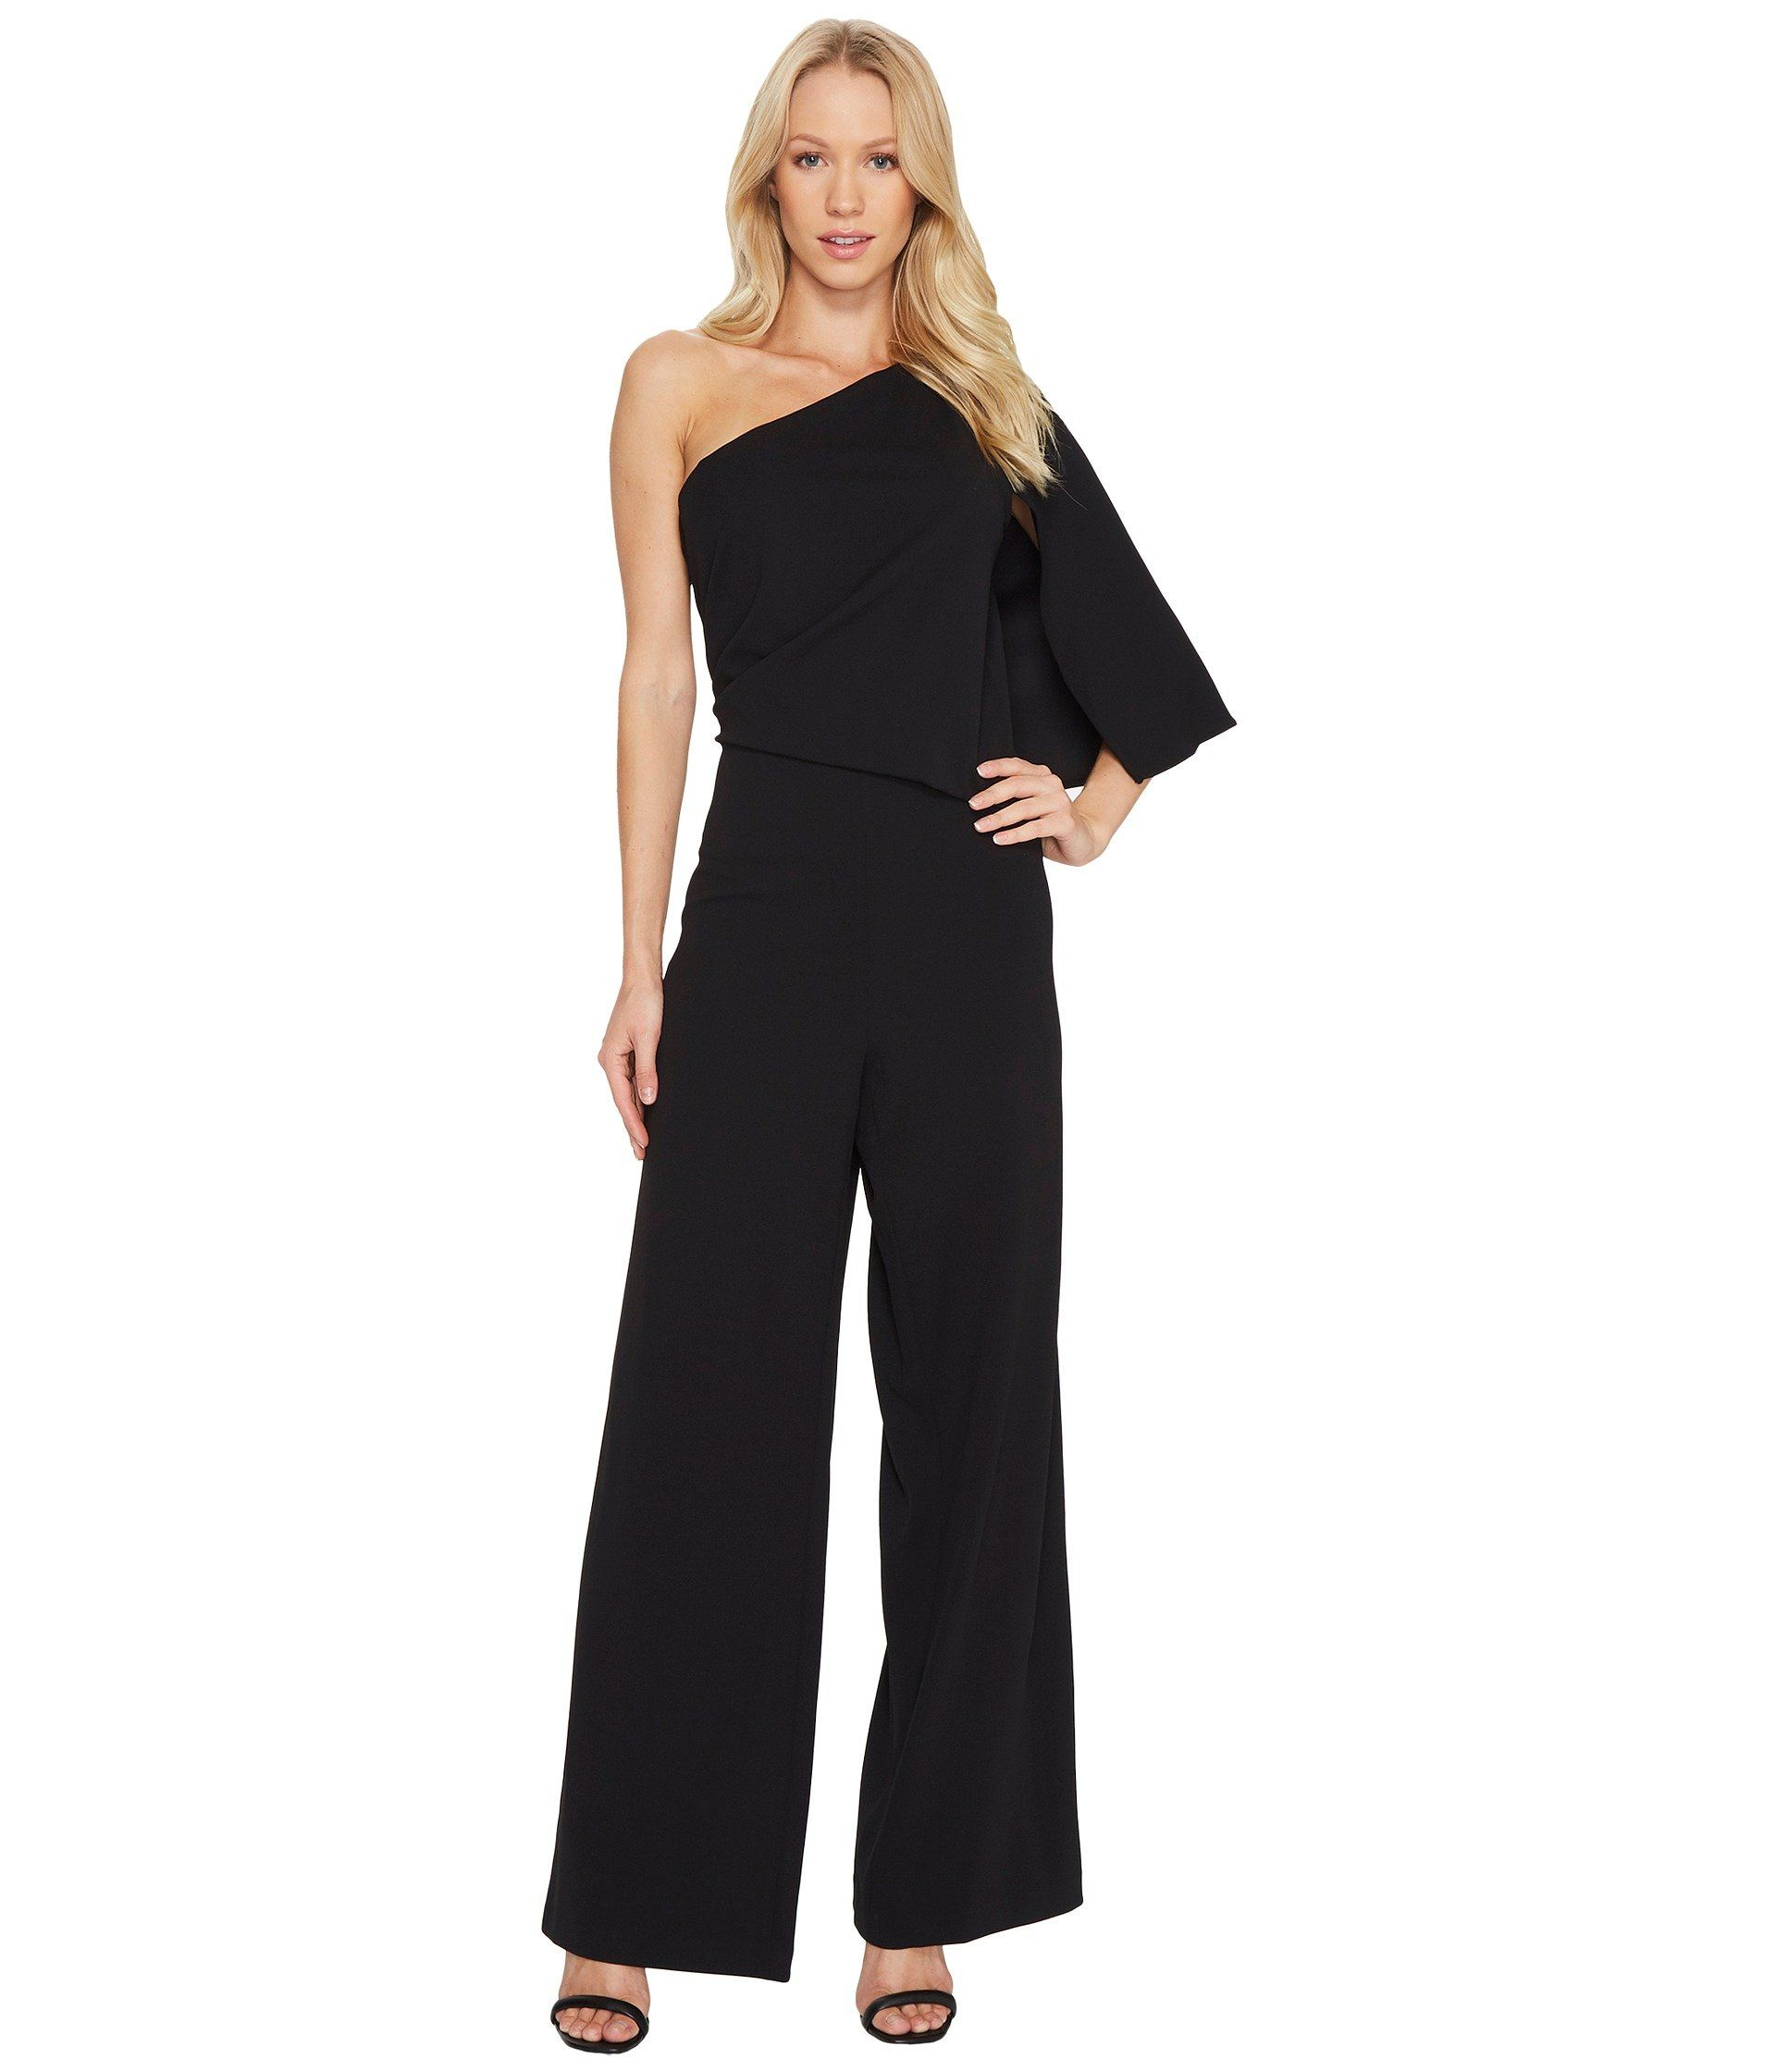 a04ff45b0320 ADRIANNA PAPELL Knit Crepe One-Shoulder Jumpsuit. #adriannapapell #cloth #